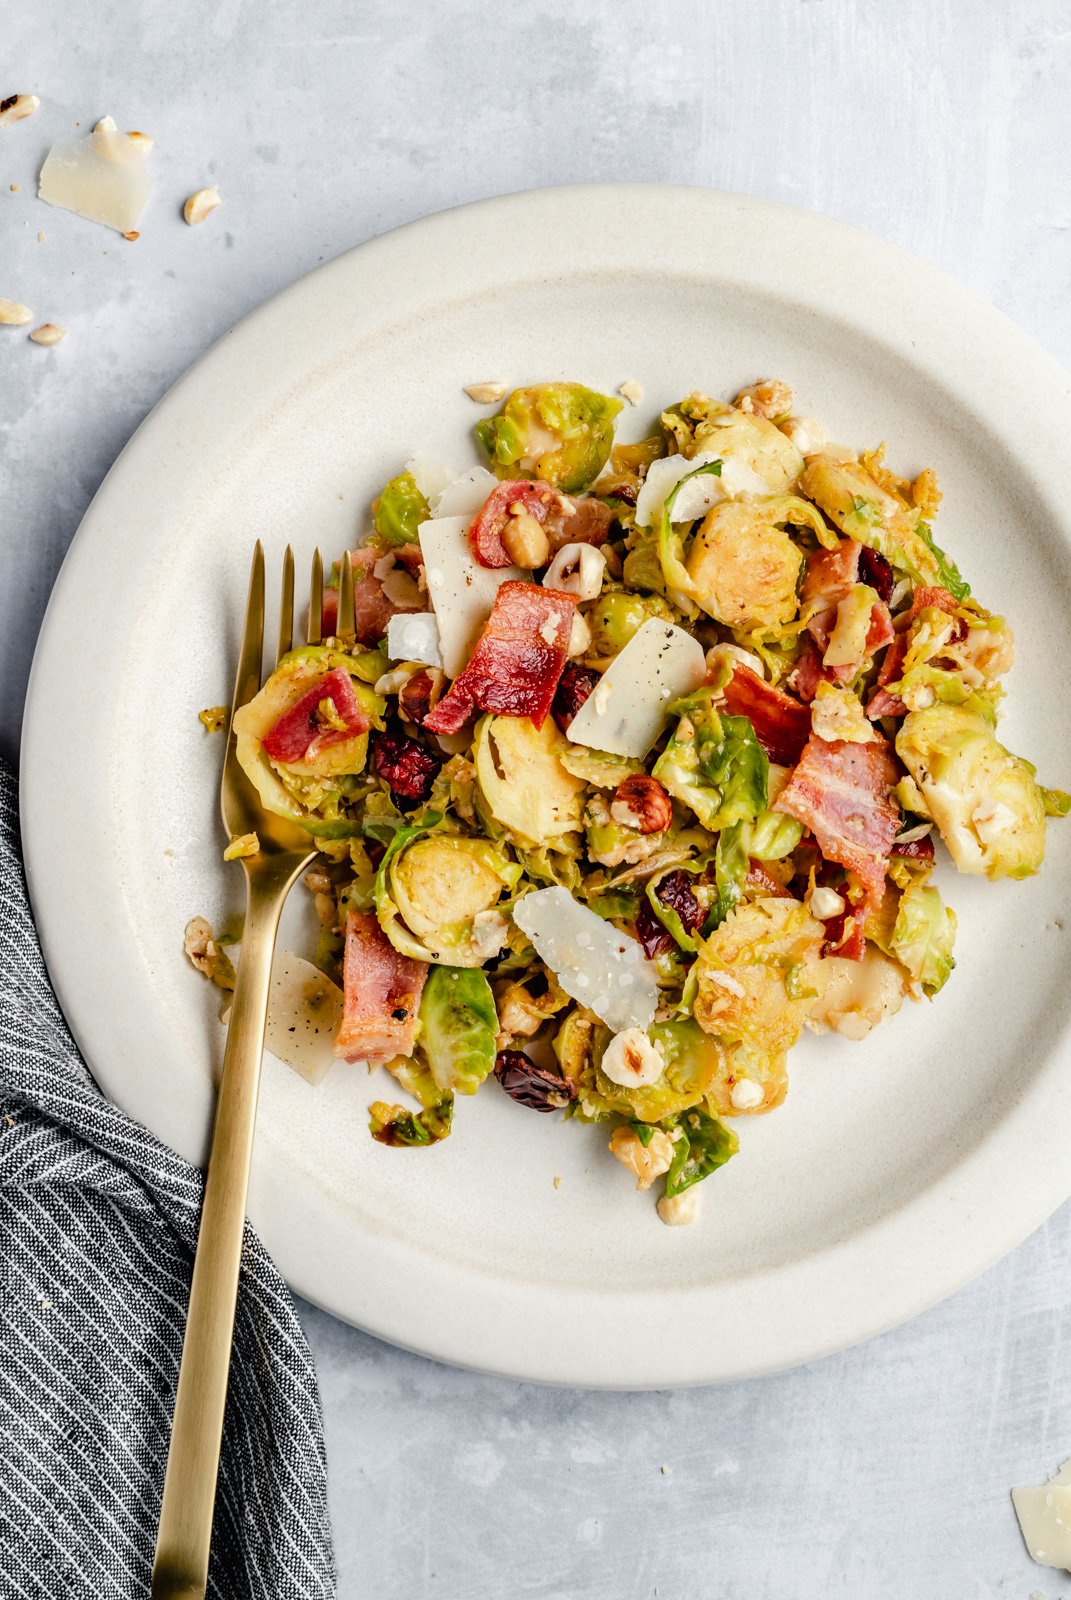 warm brussels sprouts salad with bacon on a plate with a fork